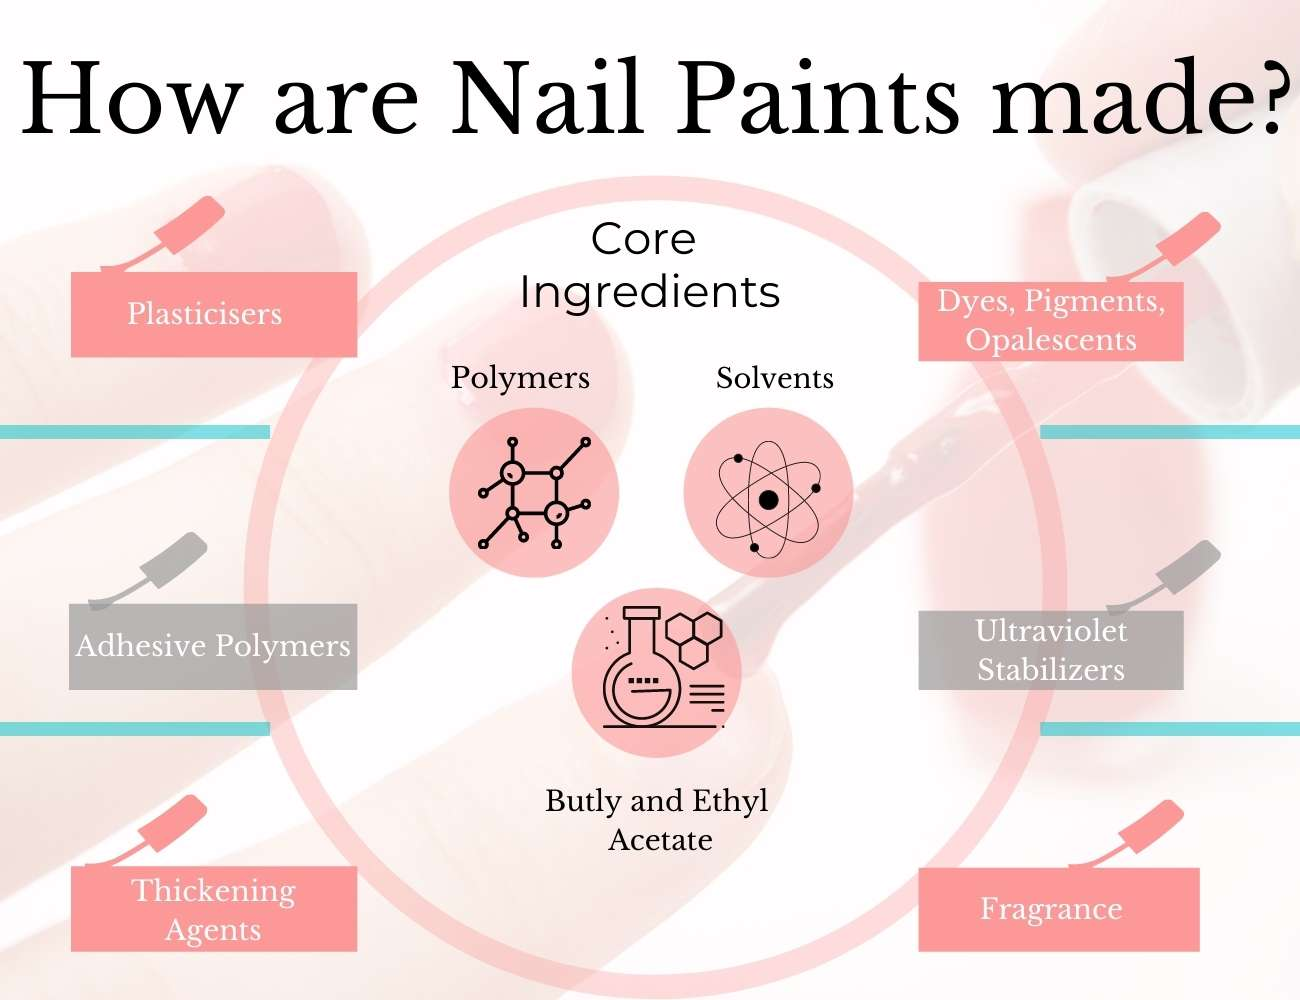 This image shows how nail polish is made.